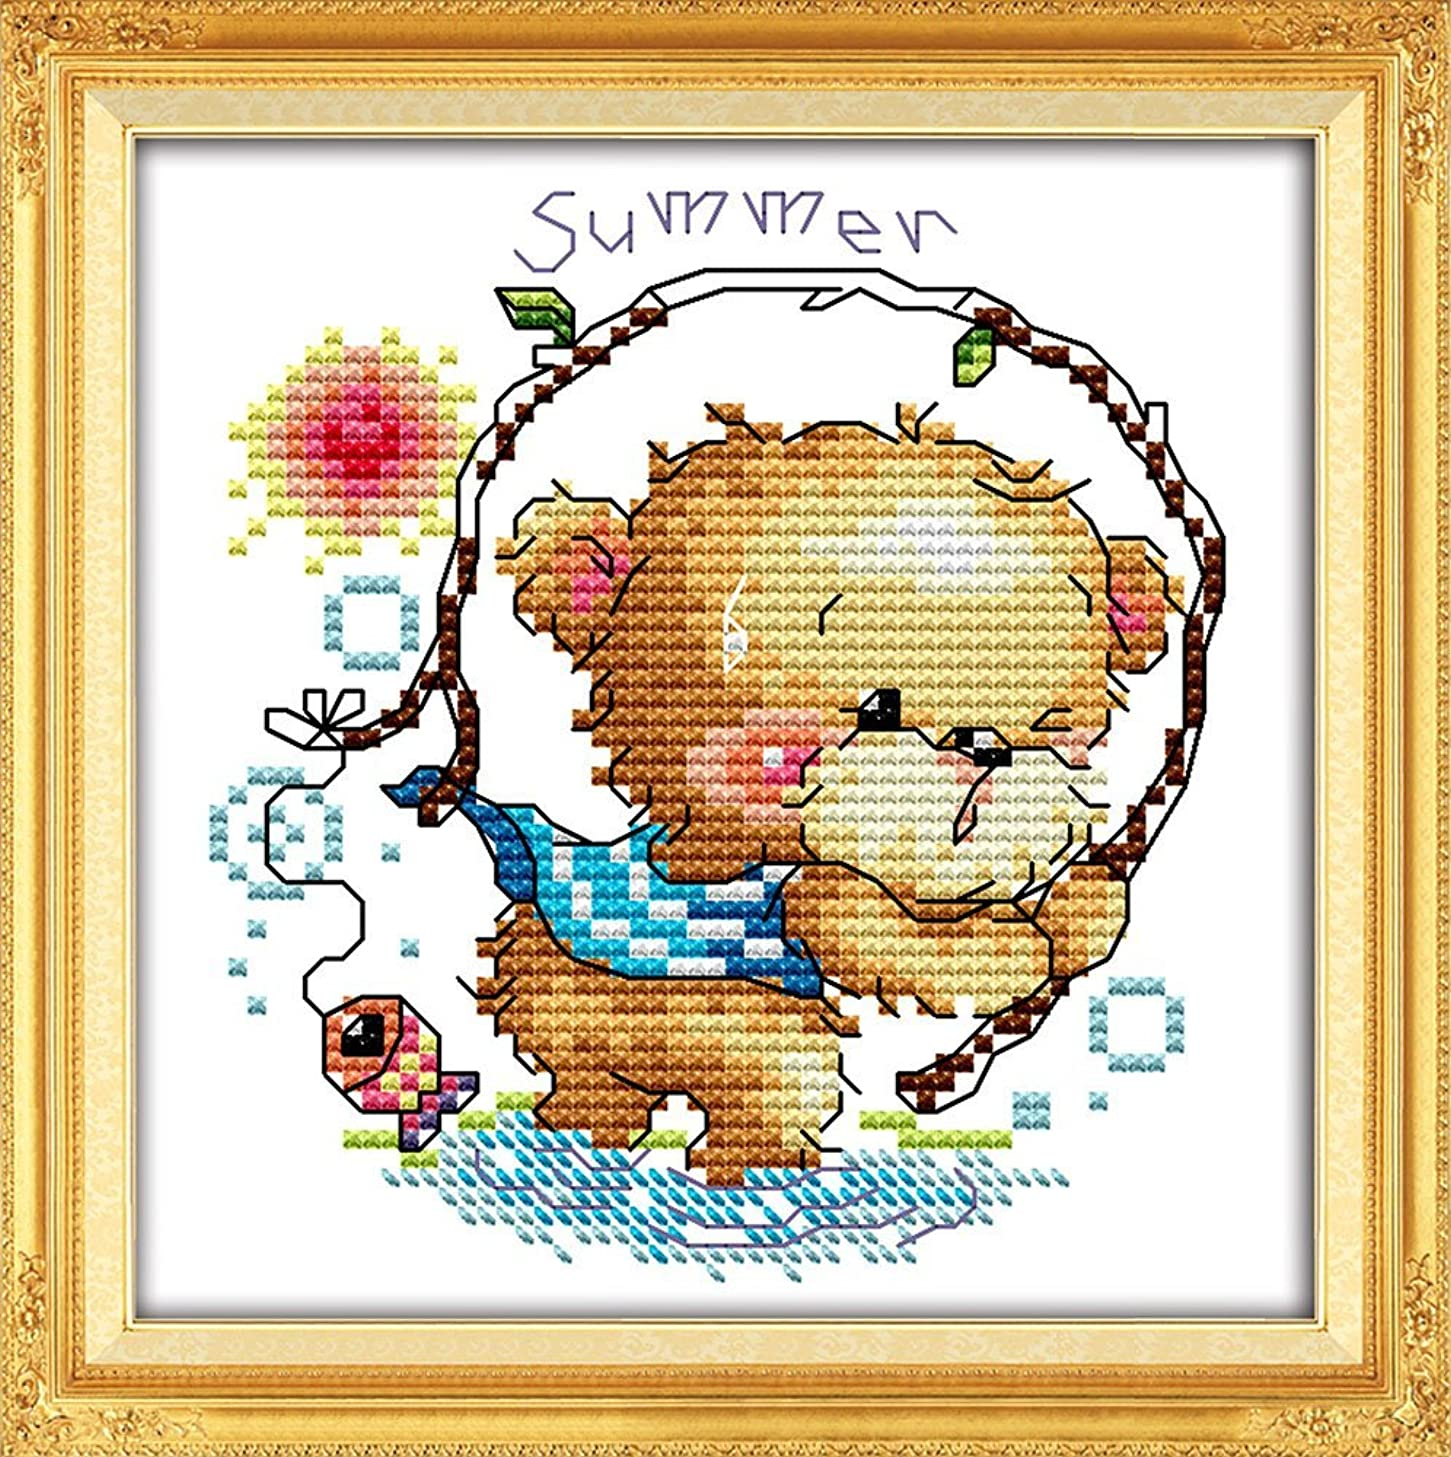 YEESAM ART New Cross Stitch Kits Advanced Patterns for Beginners Kids Adults - Four Seasons Little Bear-Summer 11 CT Stamped 20x20 cm - DIY Needlework Wedding Christmas Gifts